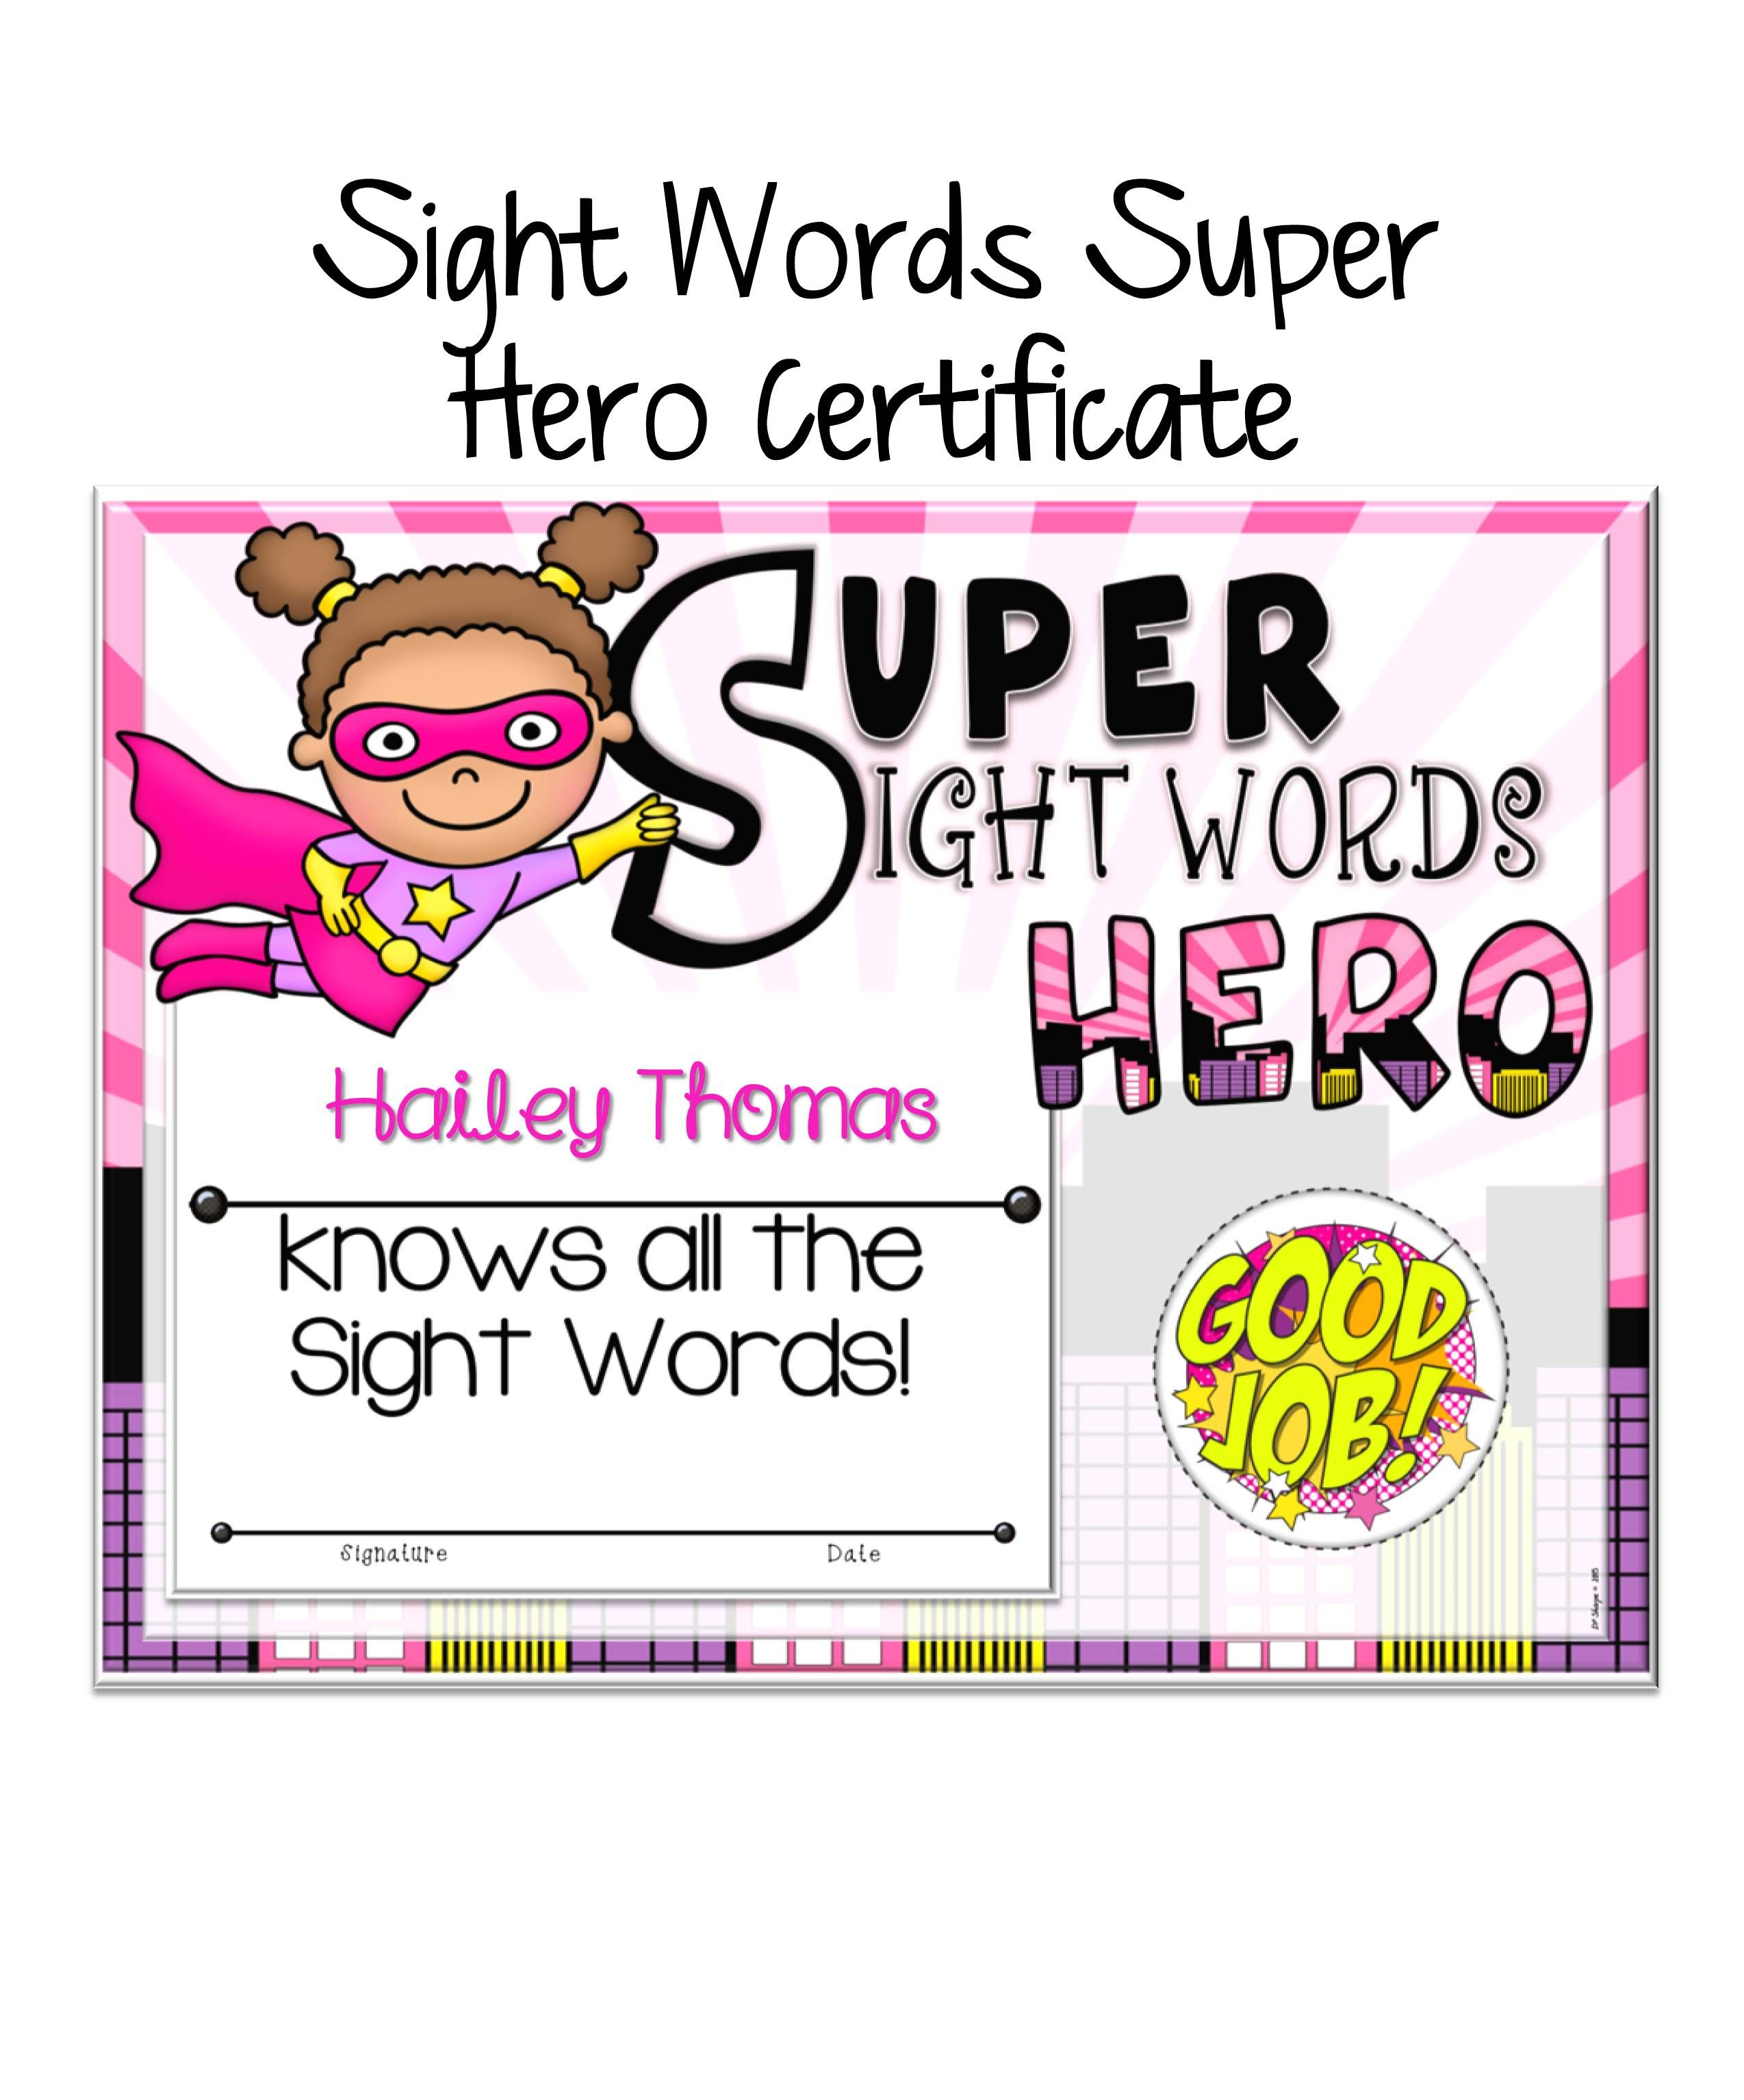 Sight words super heroes certificates pack certificate students sight words super heroes certificates pack 1betcityfo Image collections